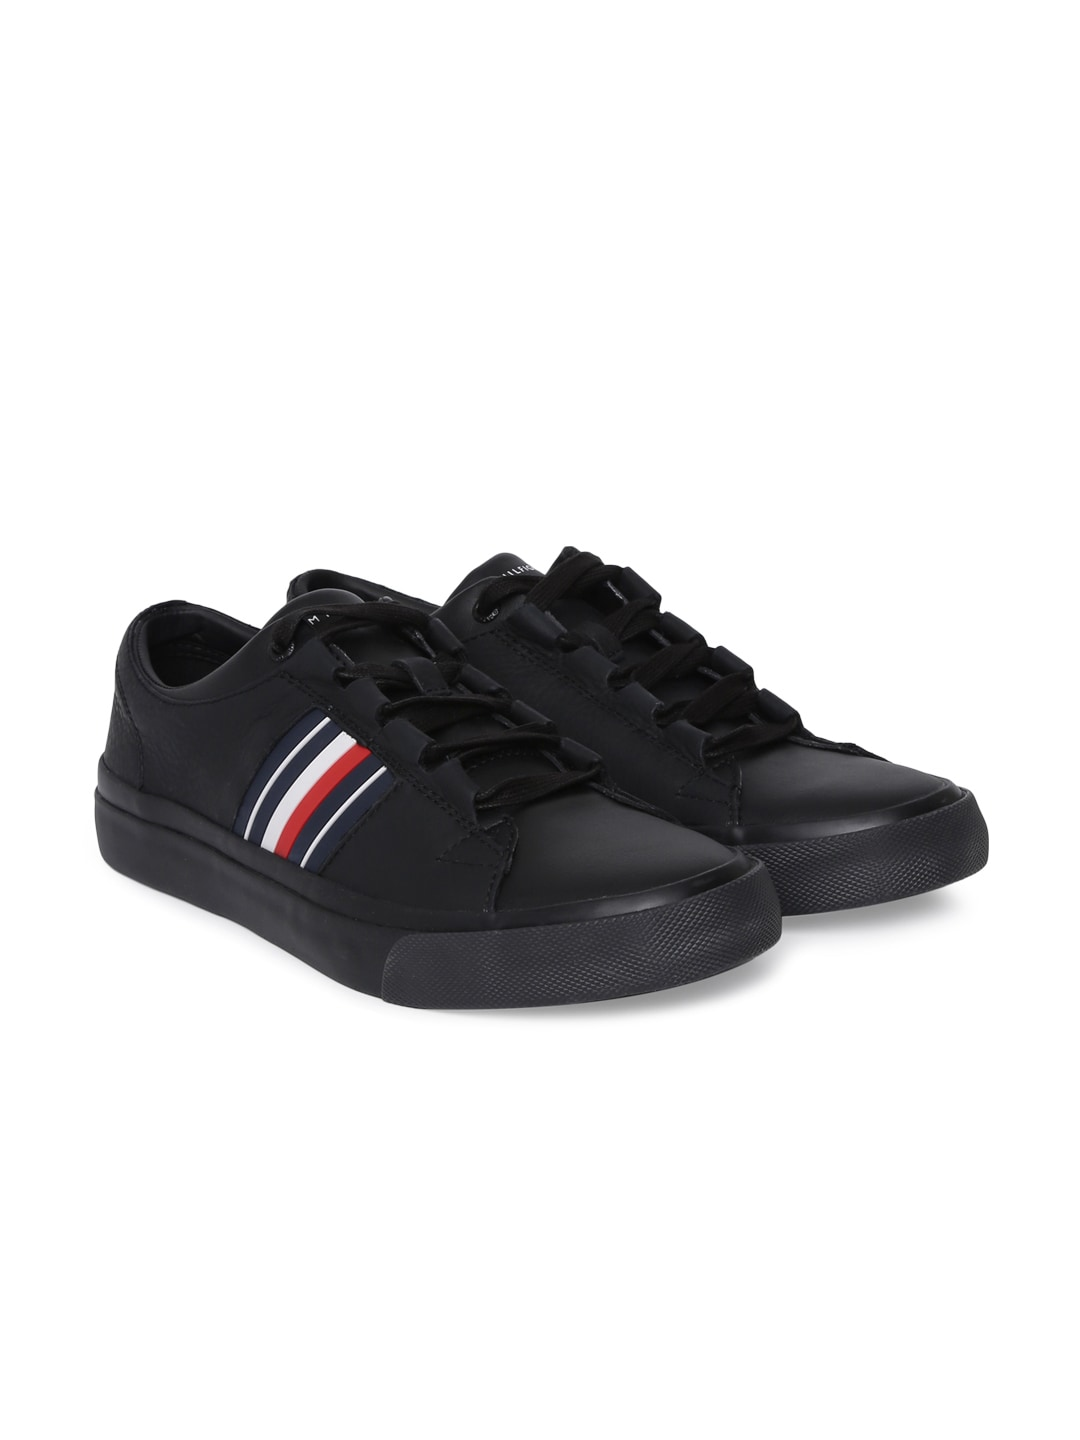 89b816796e13da Tommy Hilfiger Shoes - Buy Tommy Hilfiger Shoes Online - Myntra